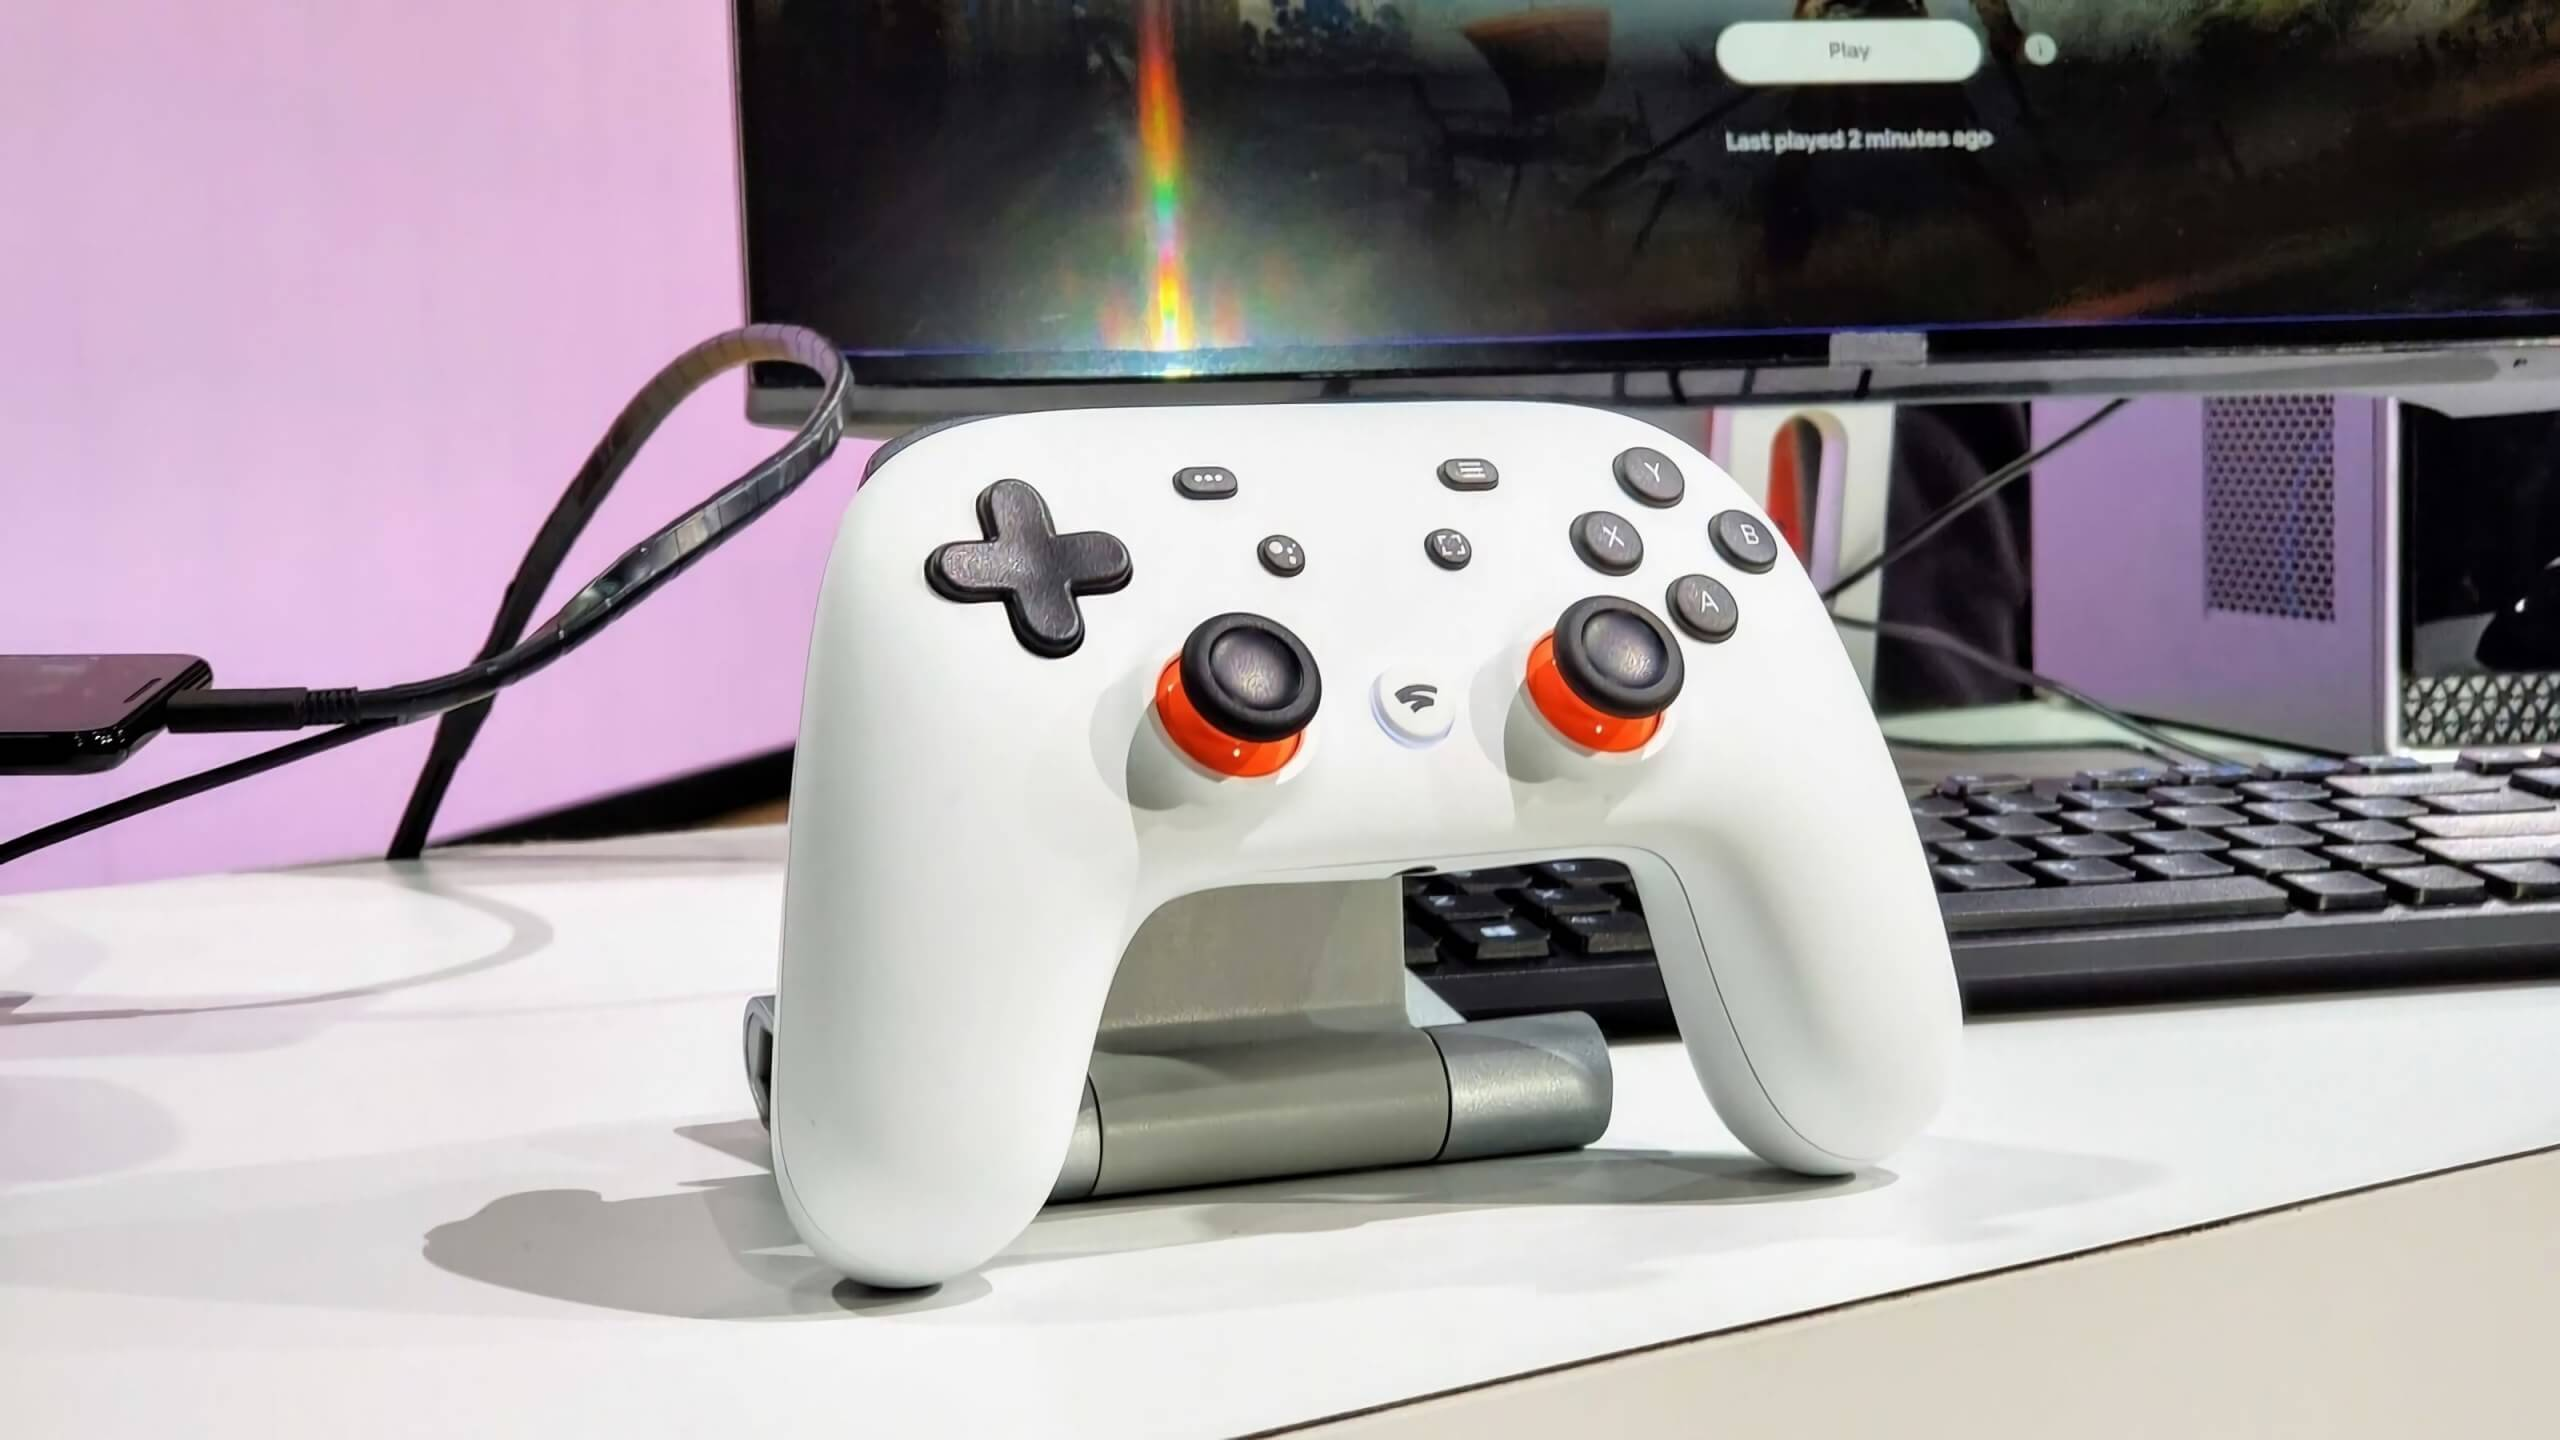 Stadia Premiere is discounted to $100 indefinitely